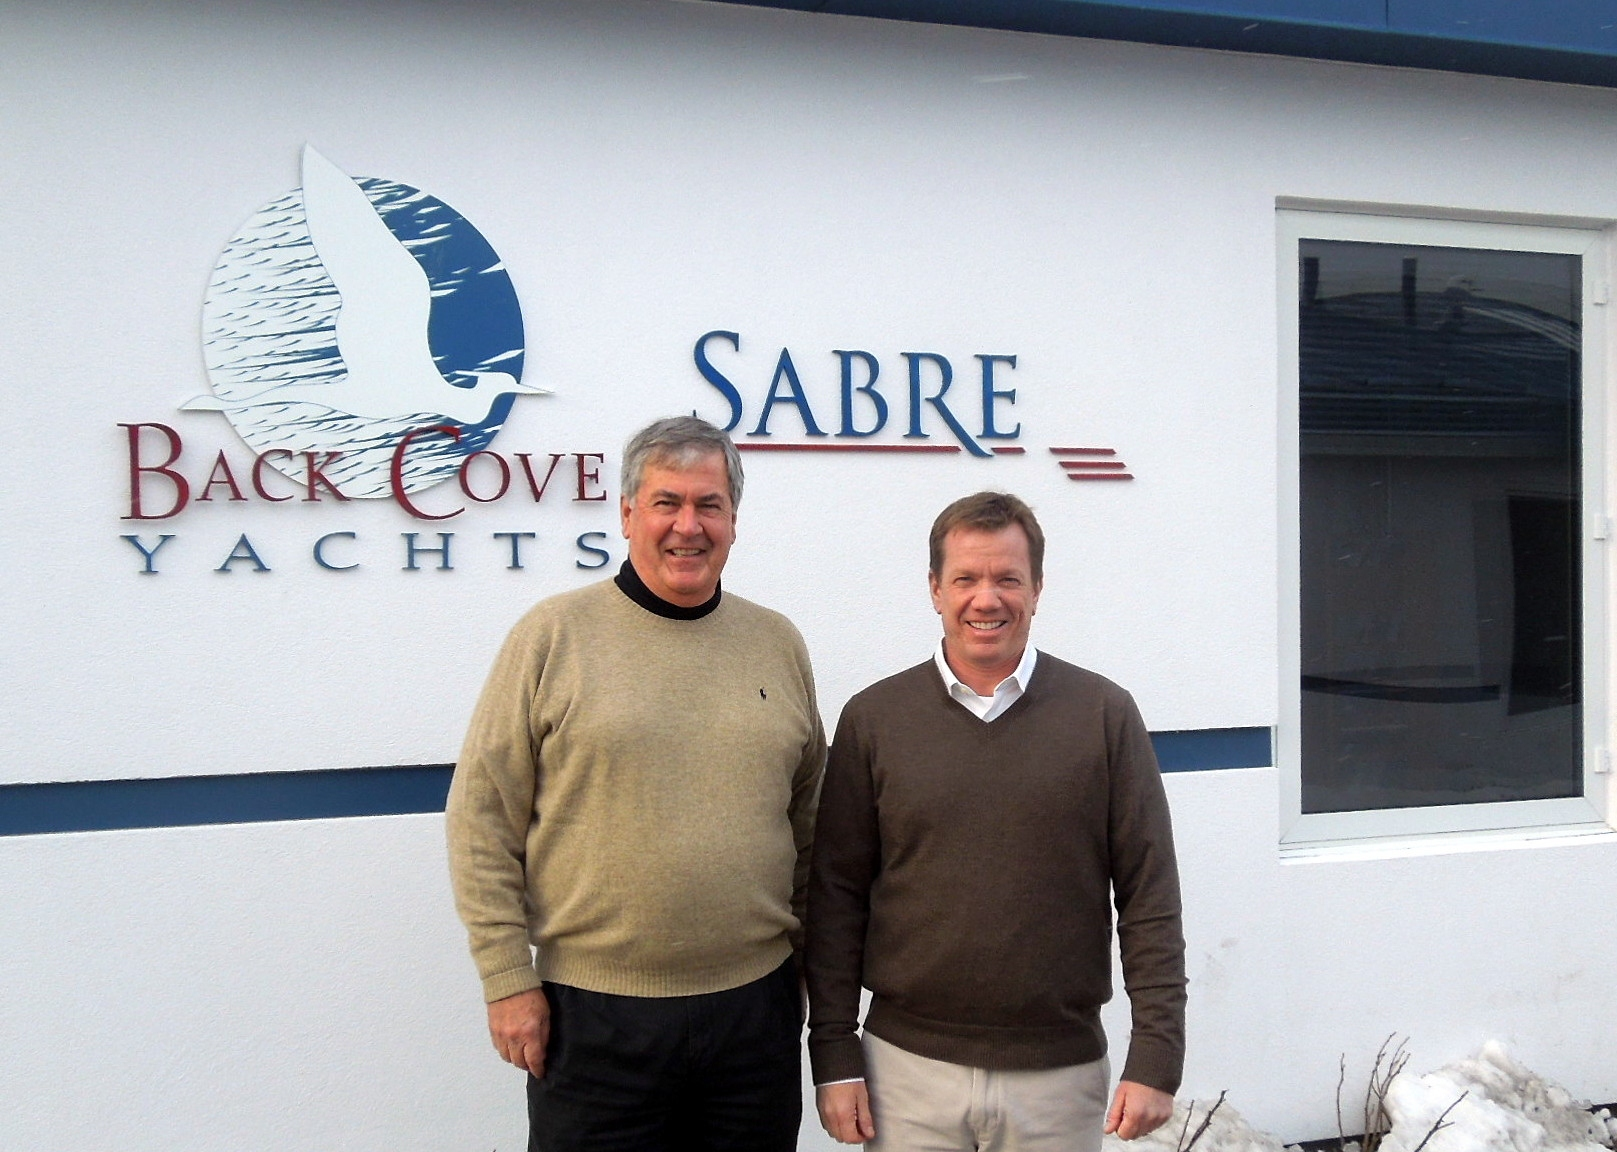 Bentley Collins, VP of Sales and Marketing & Chris DiMillo, Owner of DiMillo's Yacht Sales